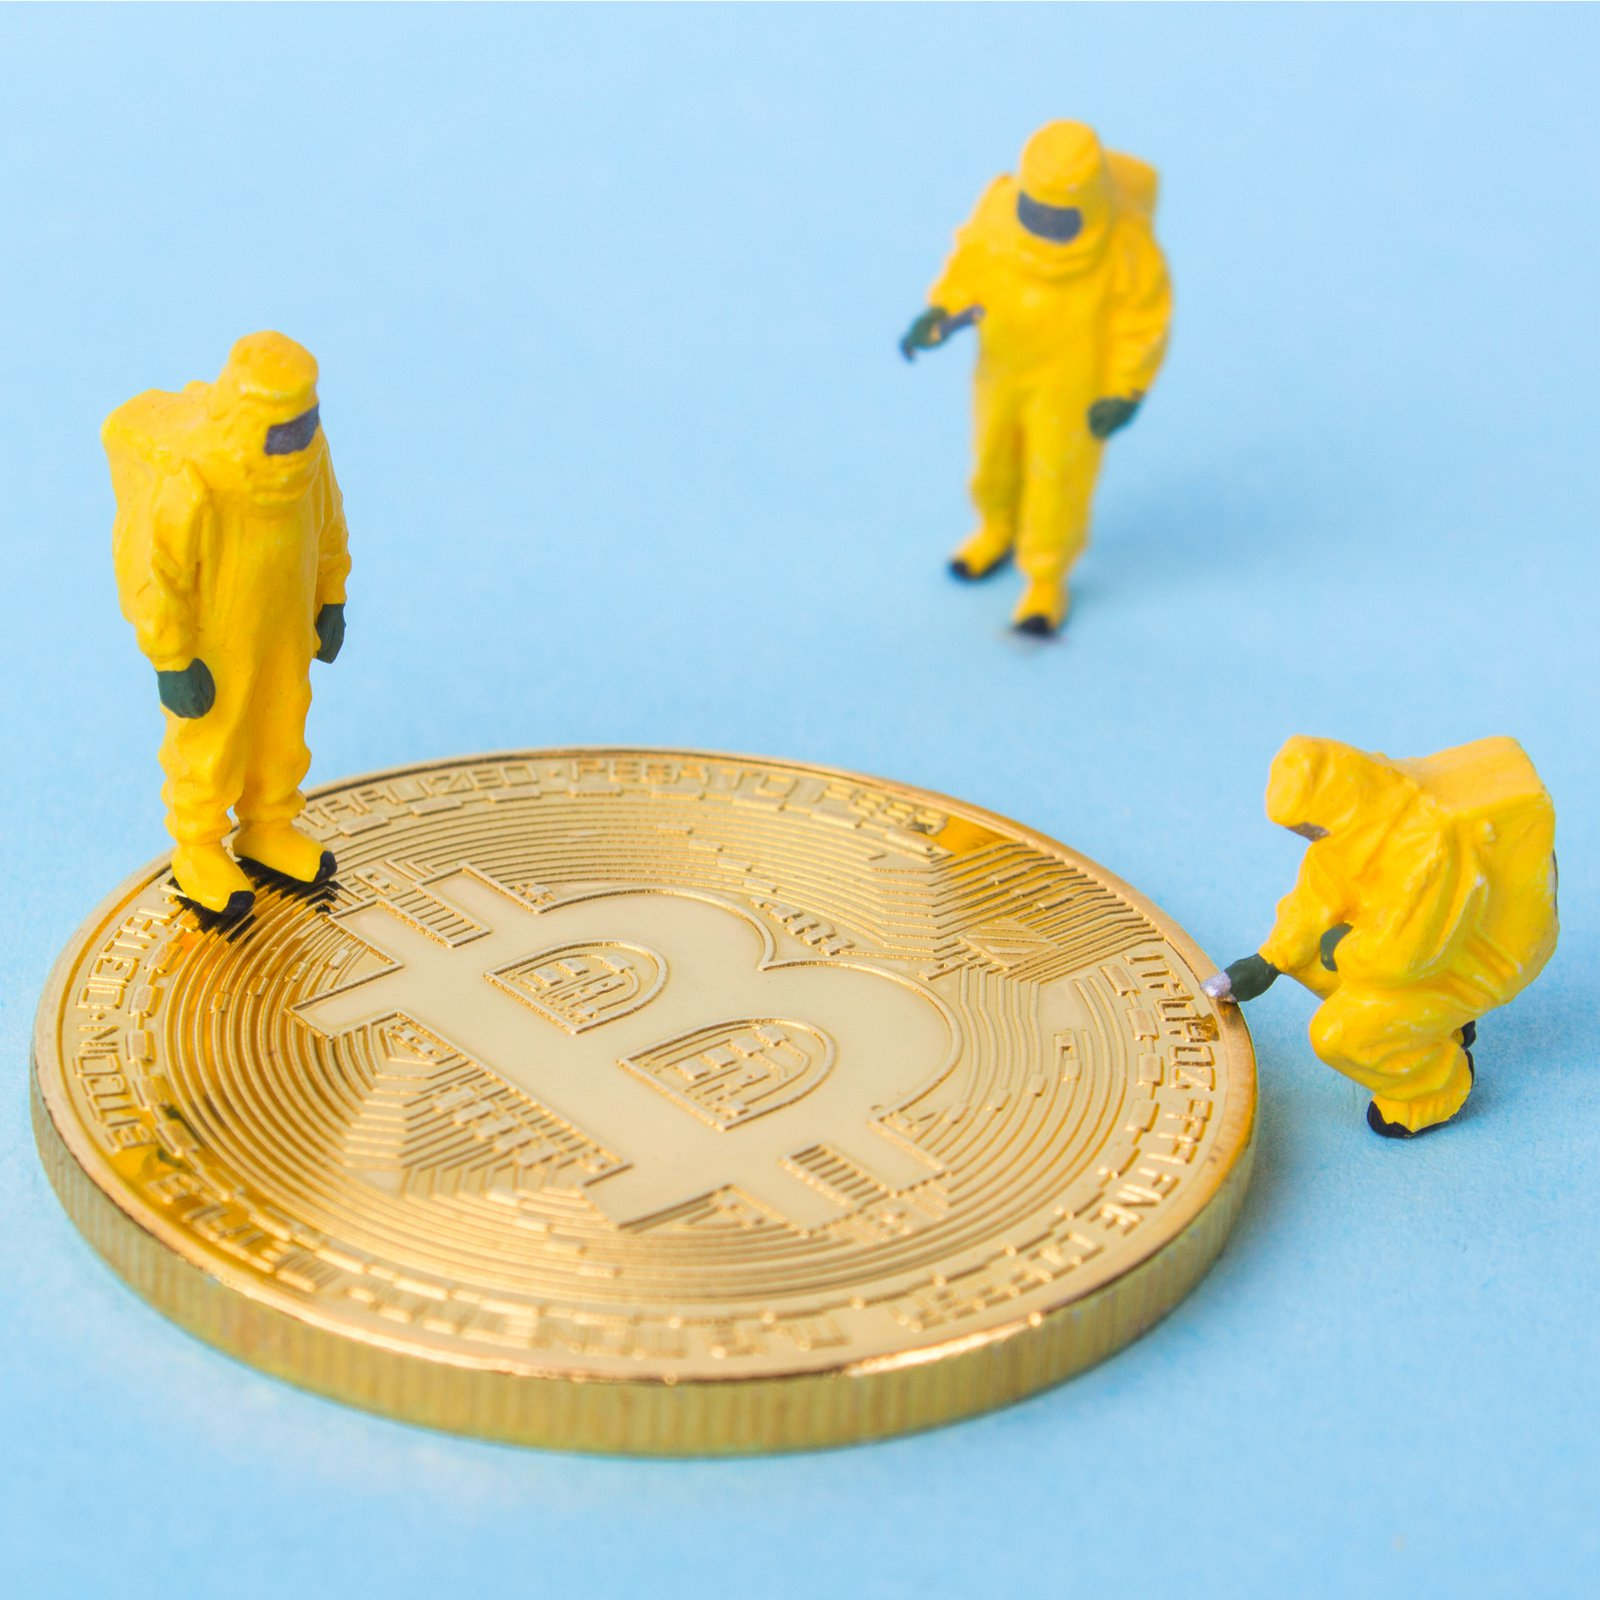 US Government Scientists Explain the Technology Behind Bitcoin to Companies